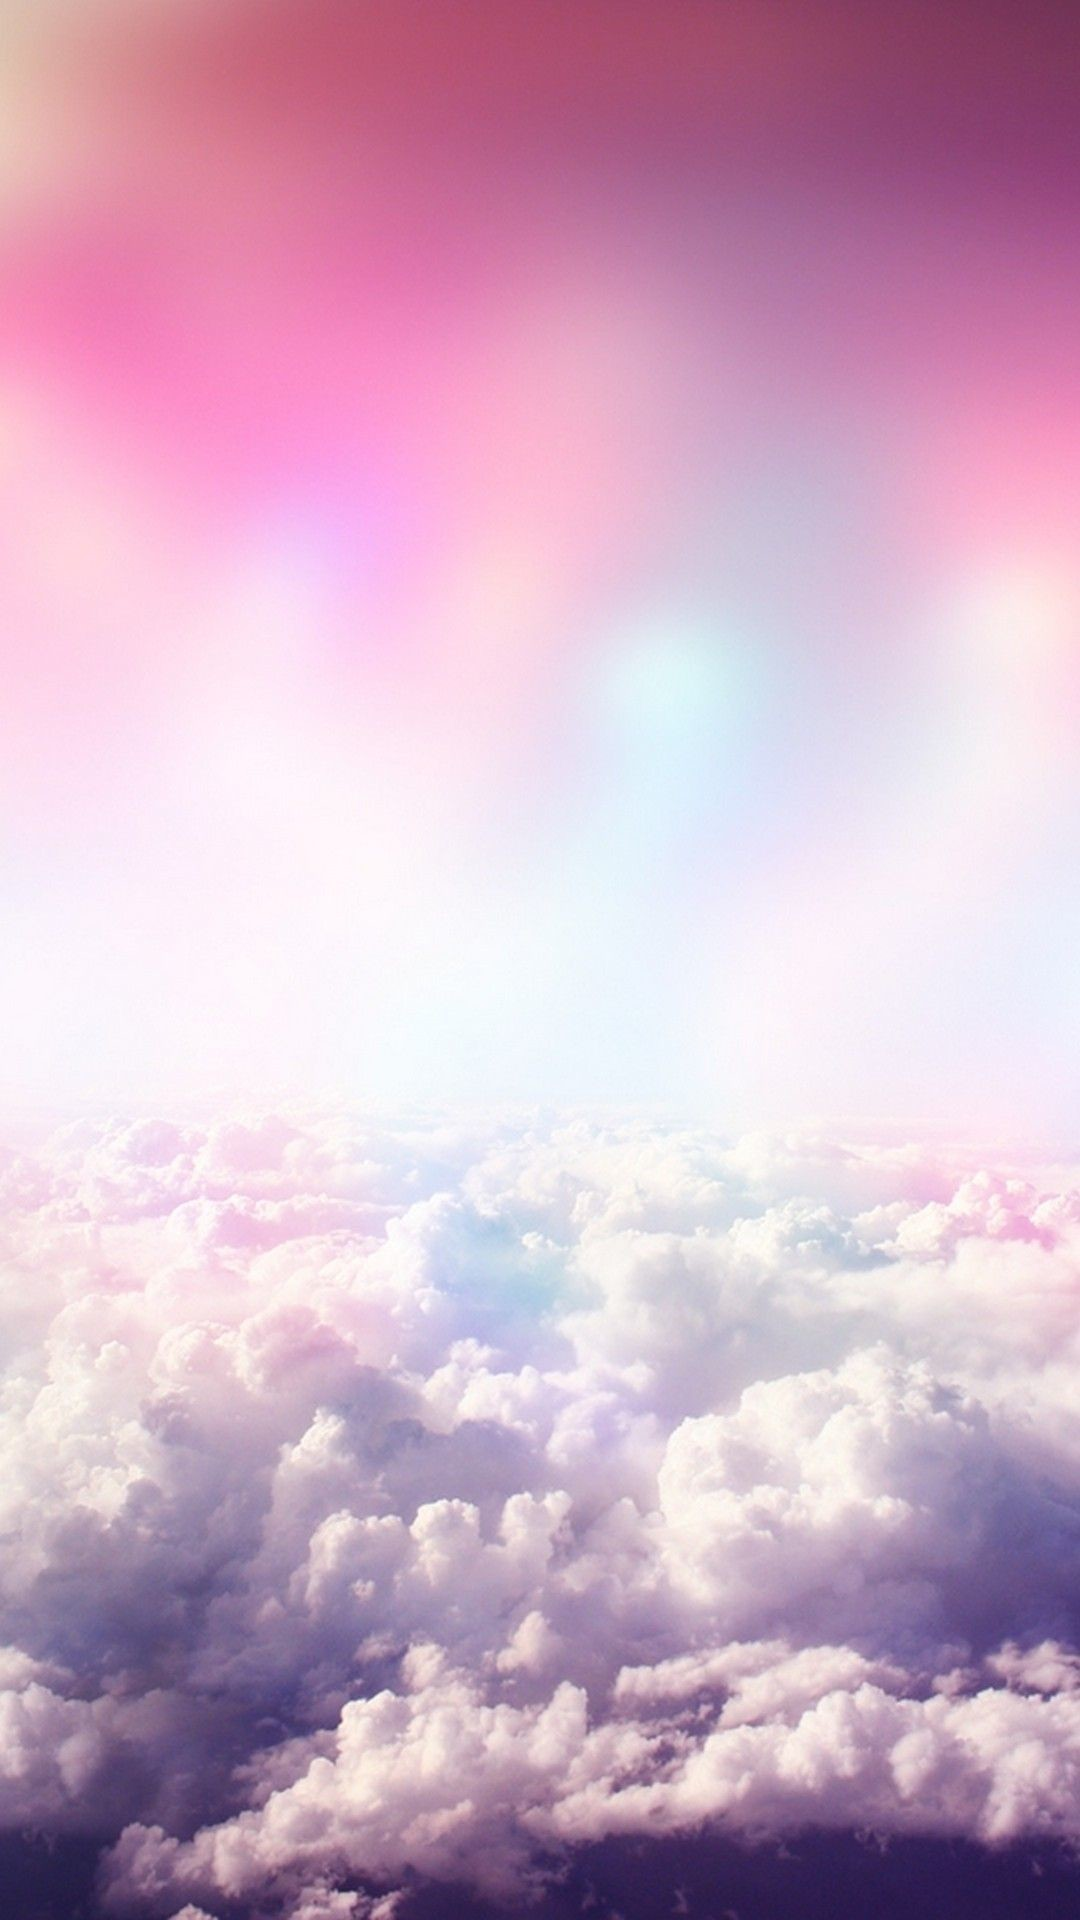 Res: 1080x1920, Cloud Cute Girly Wallpaper iPhone   Best HD Wallpapers